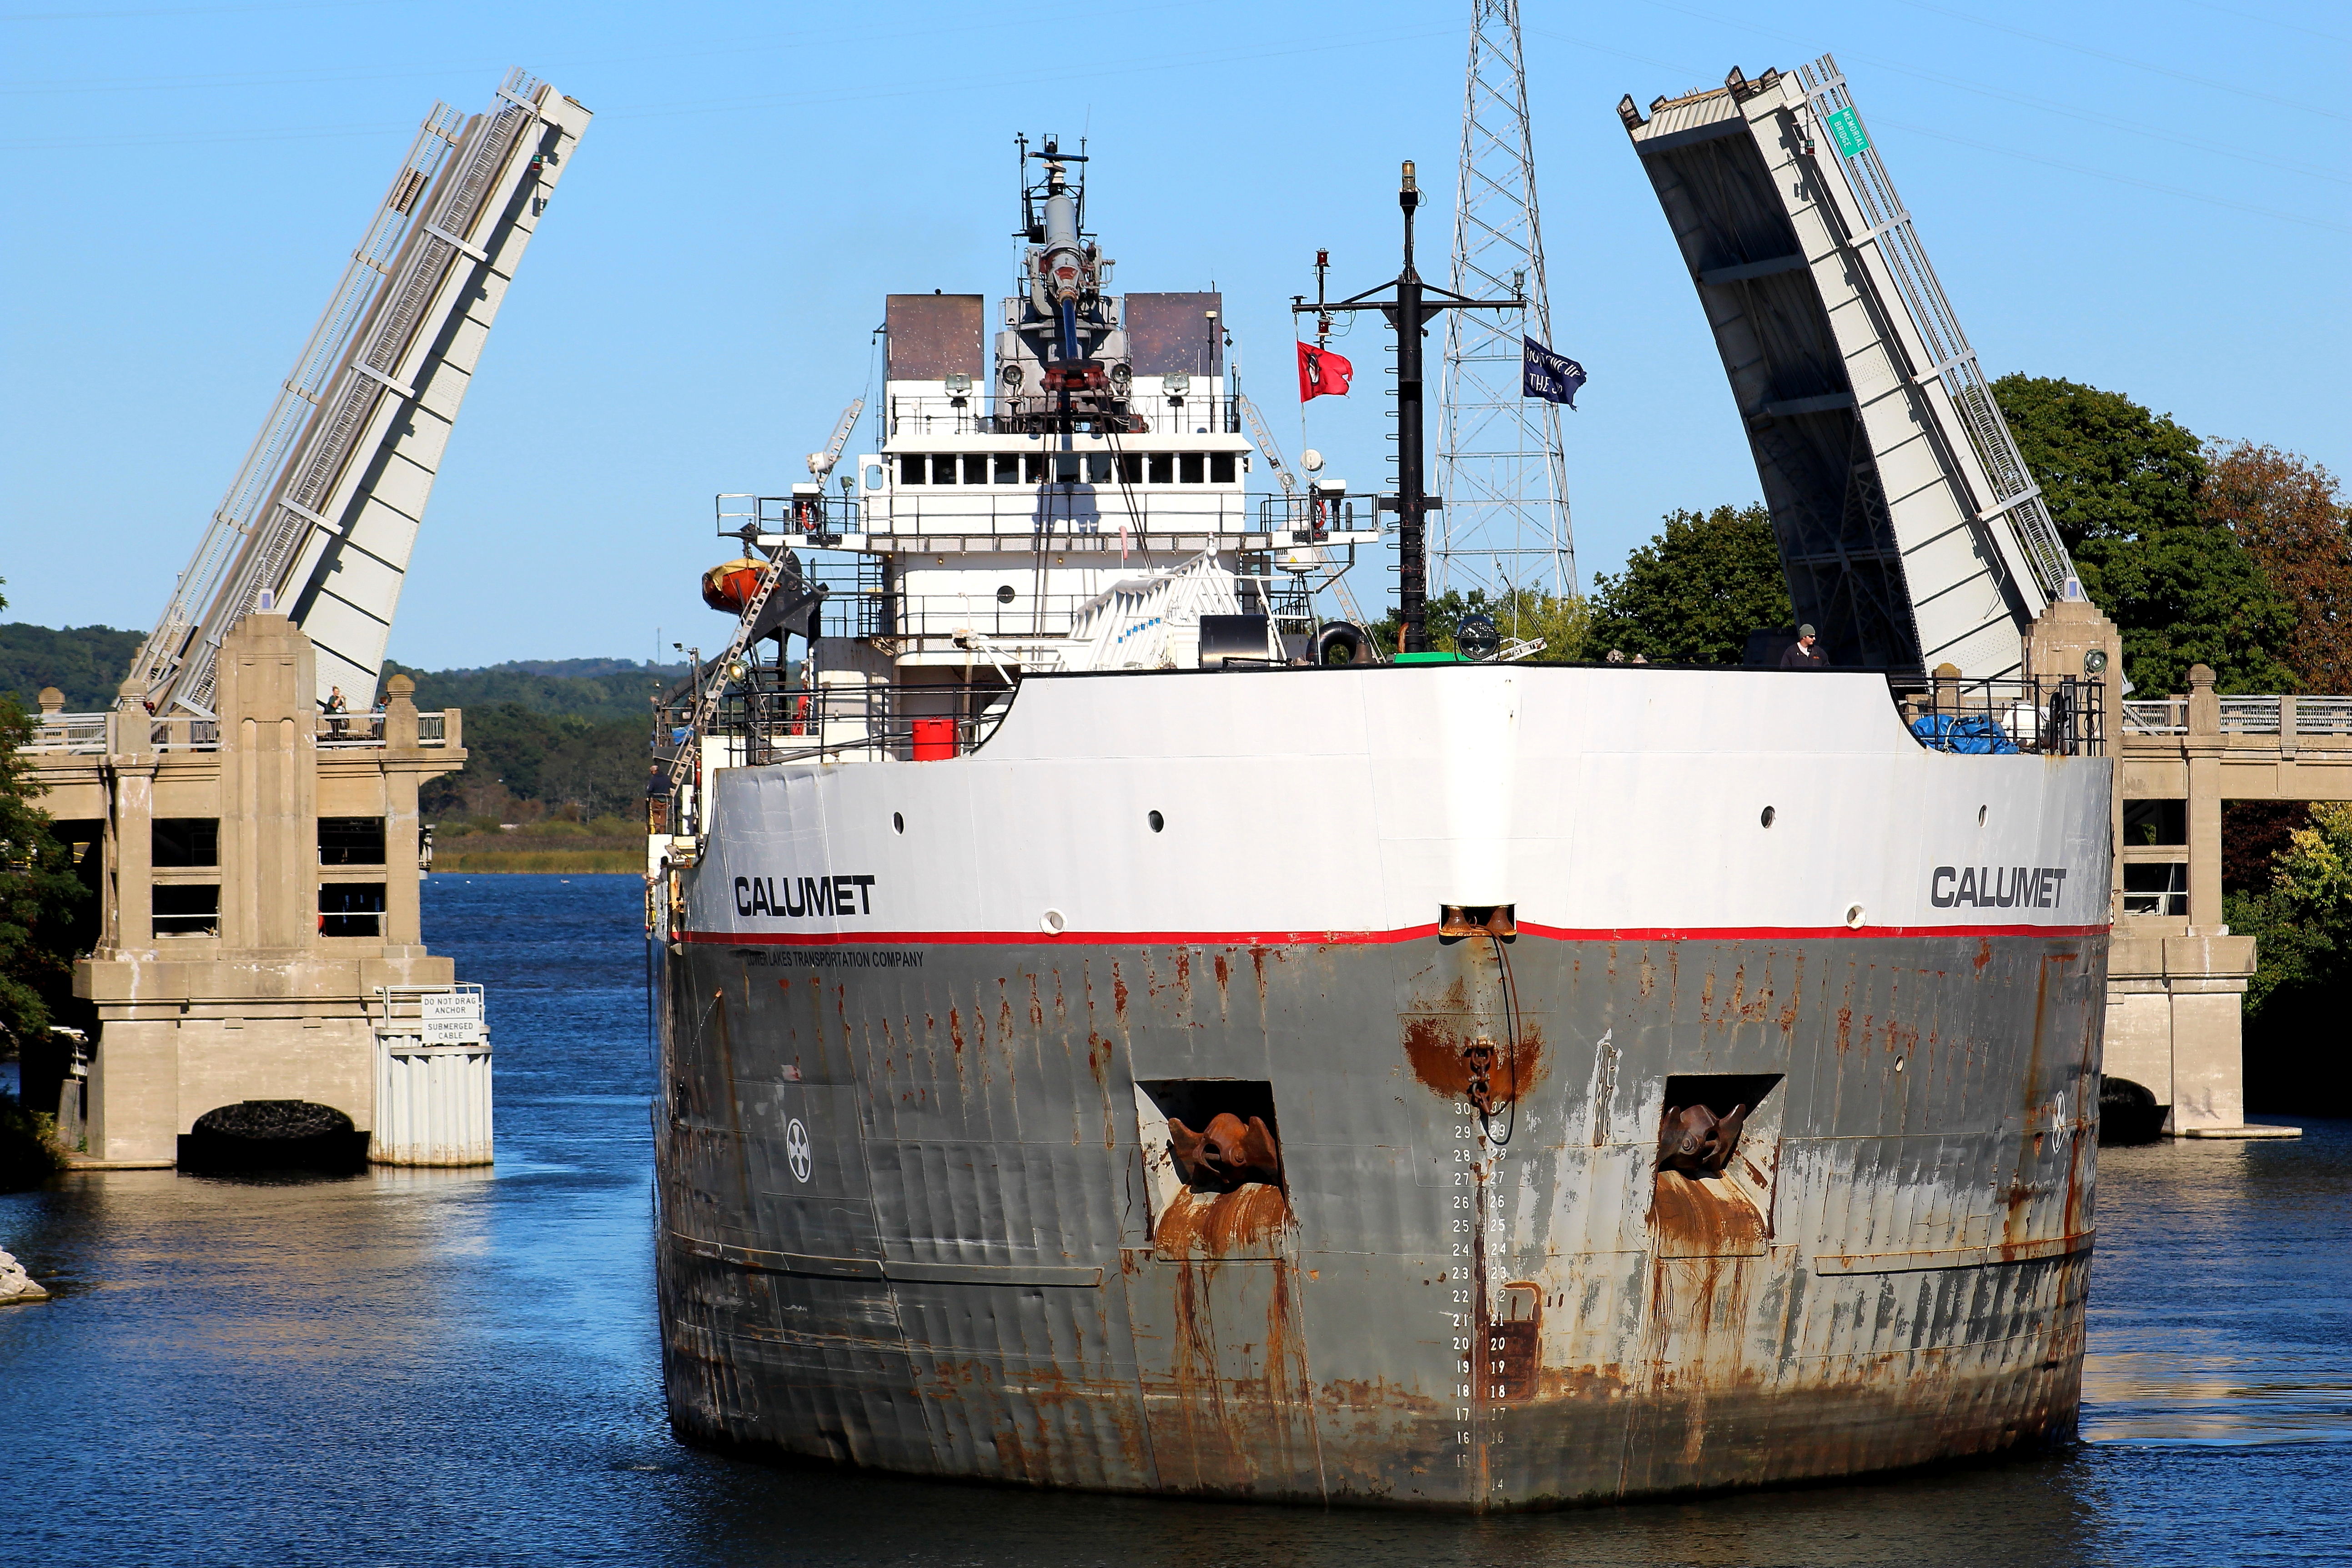 Freighter Calument going through the US 31 Bridge in the Manistee River Channel